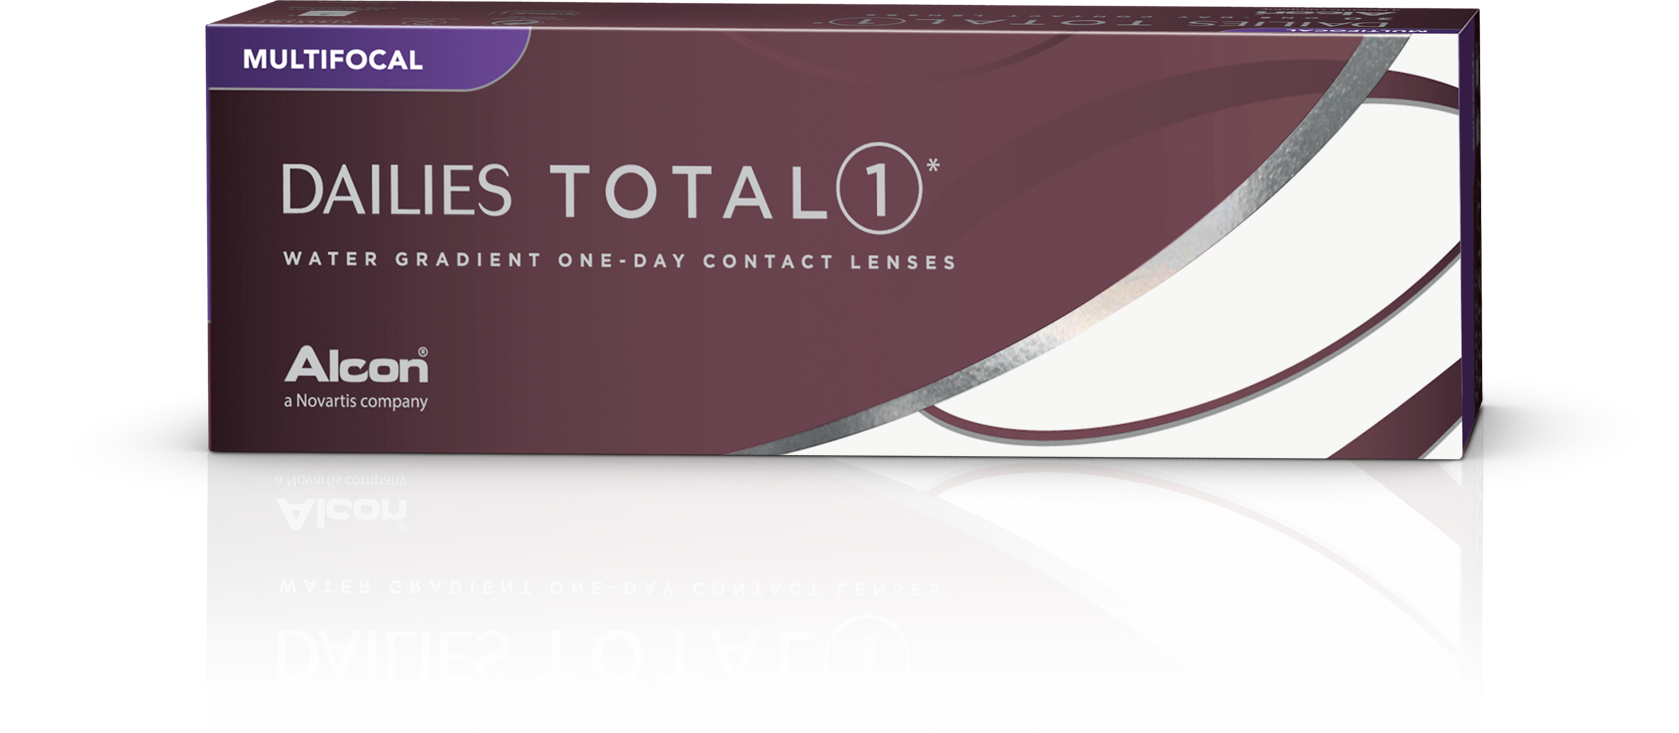 DAILIES TOTAL1® Multifocal Contact Lenses